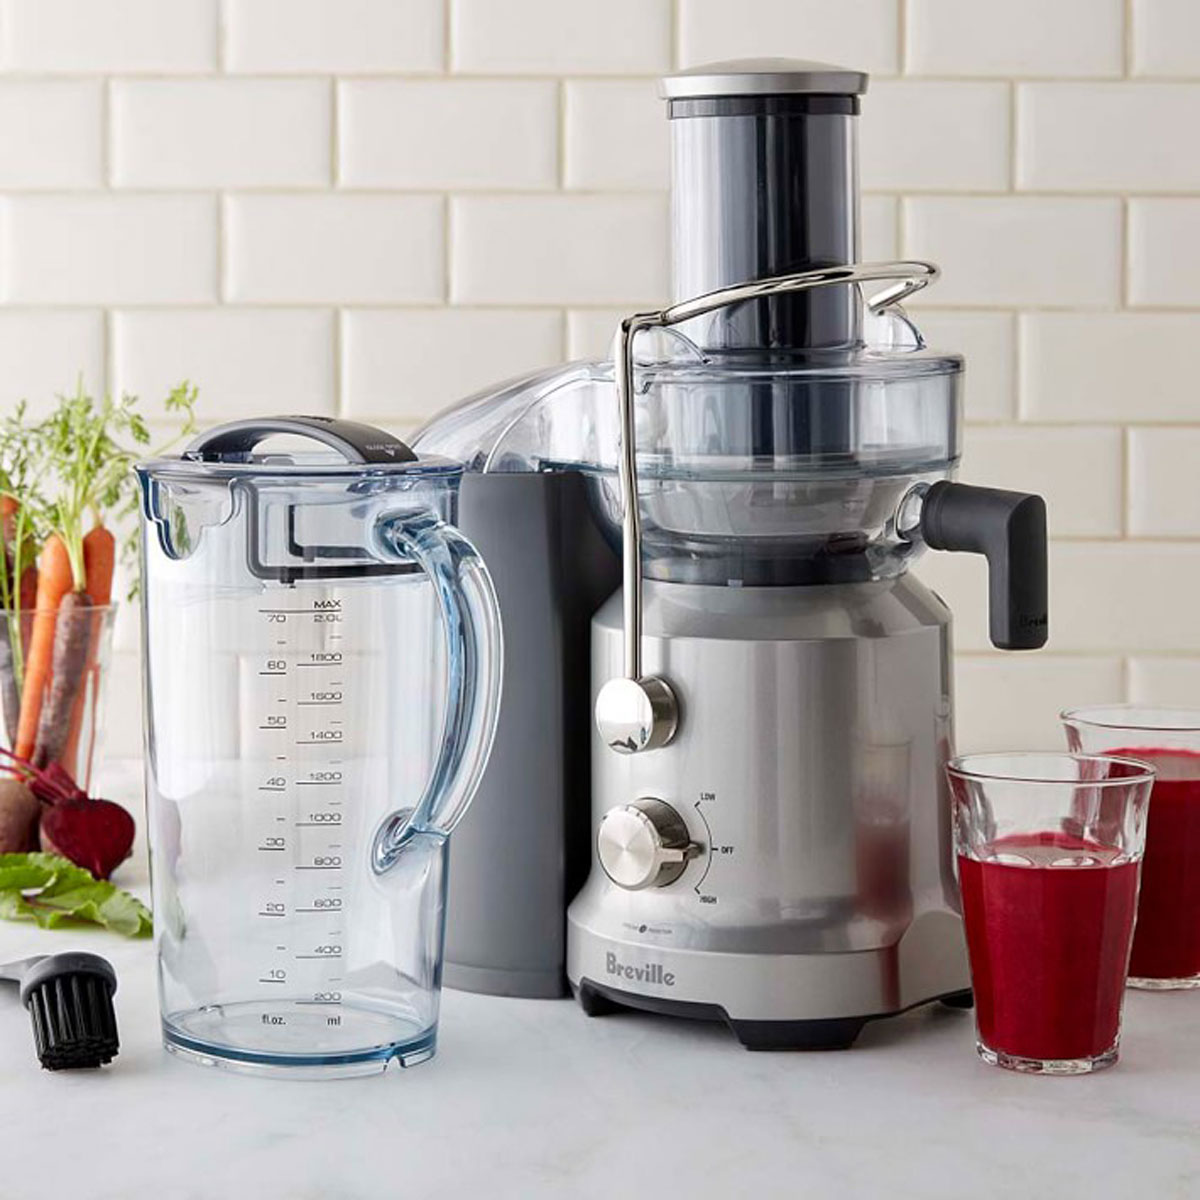 fathers day gifts breville juicer